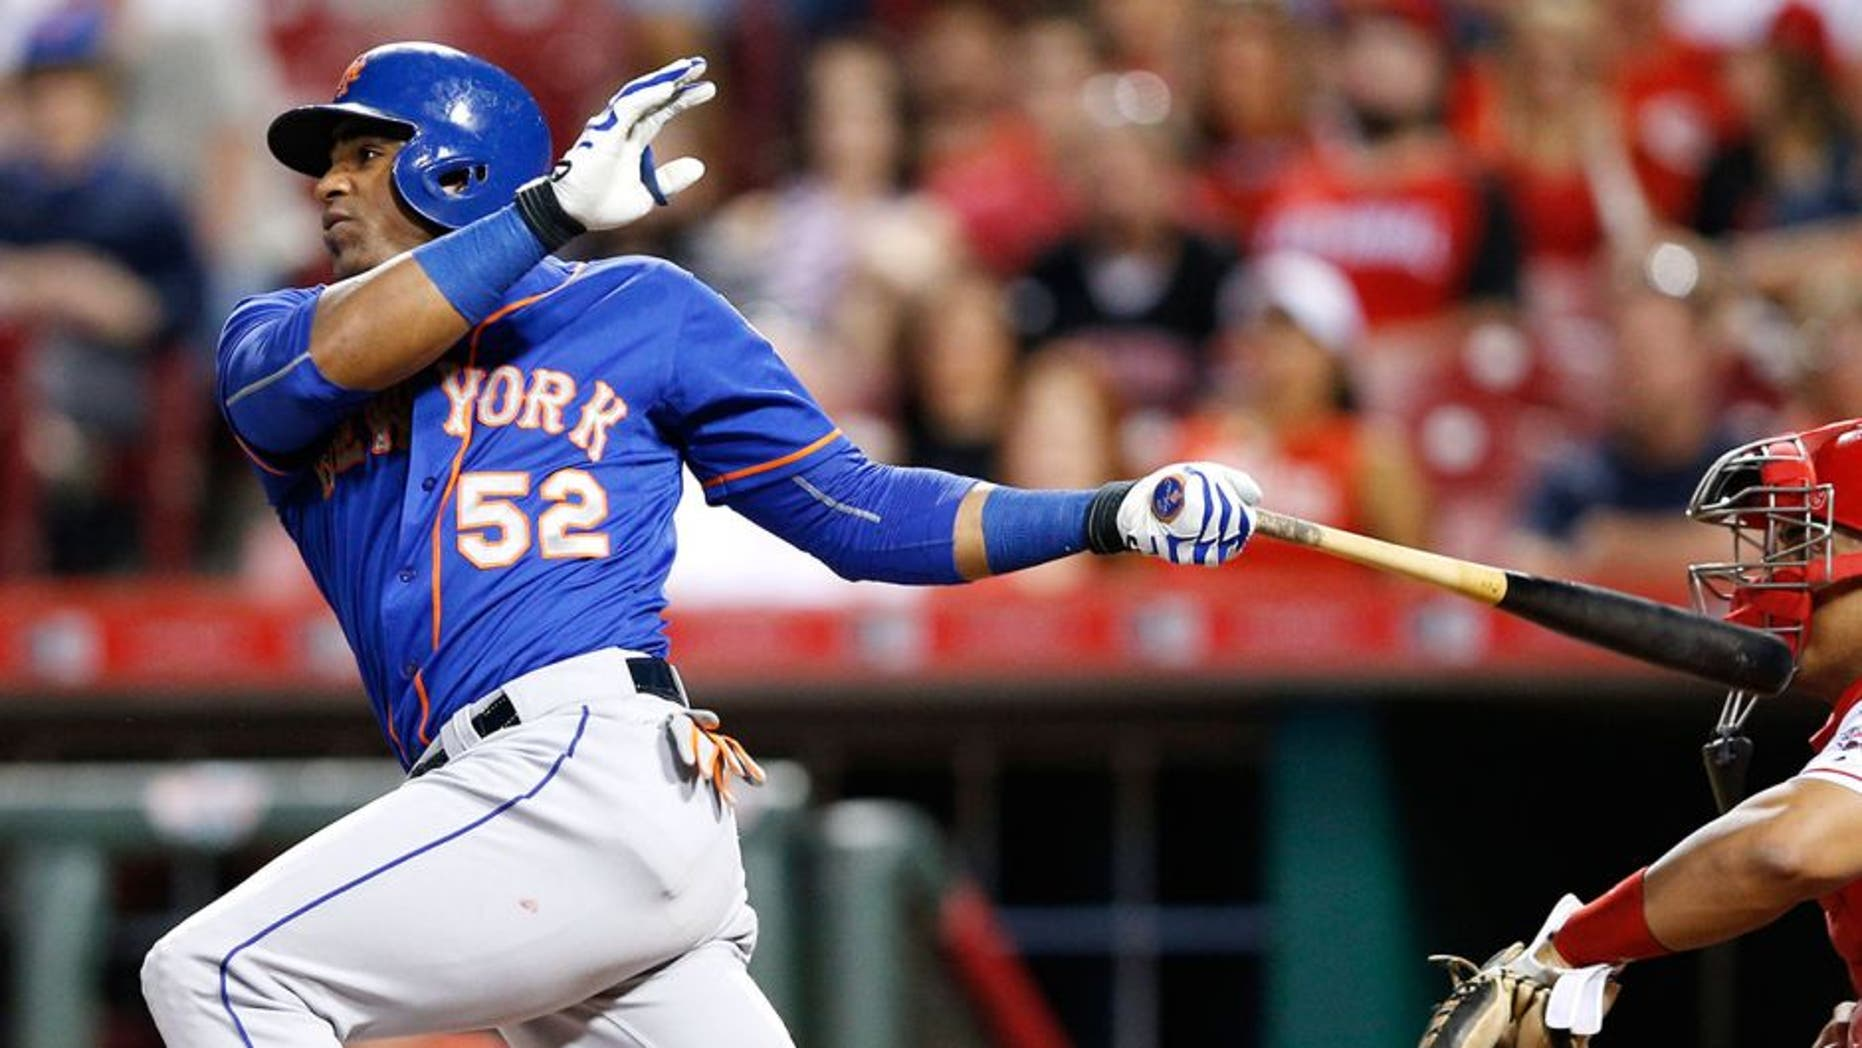 CINCINNATI, OH - SEPTEMBER 24: Yoenis Cespedes #52 of the New York Mets singles to drive in a run against the Cincinnati Reds in the seventh inning at Great American Ball Park on September 24, 2015 in Cincinnati, Ohio. (Photo by Joe Robbins/Getty Images)